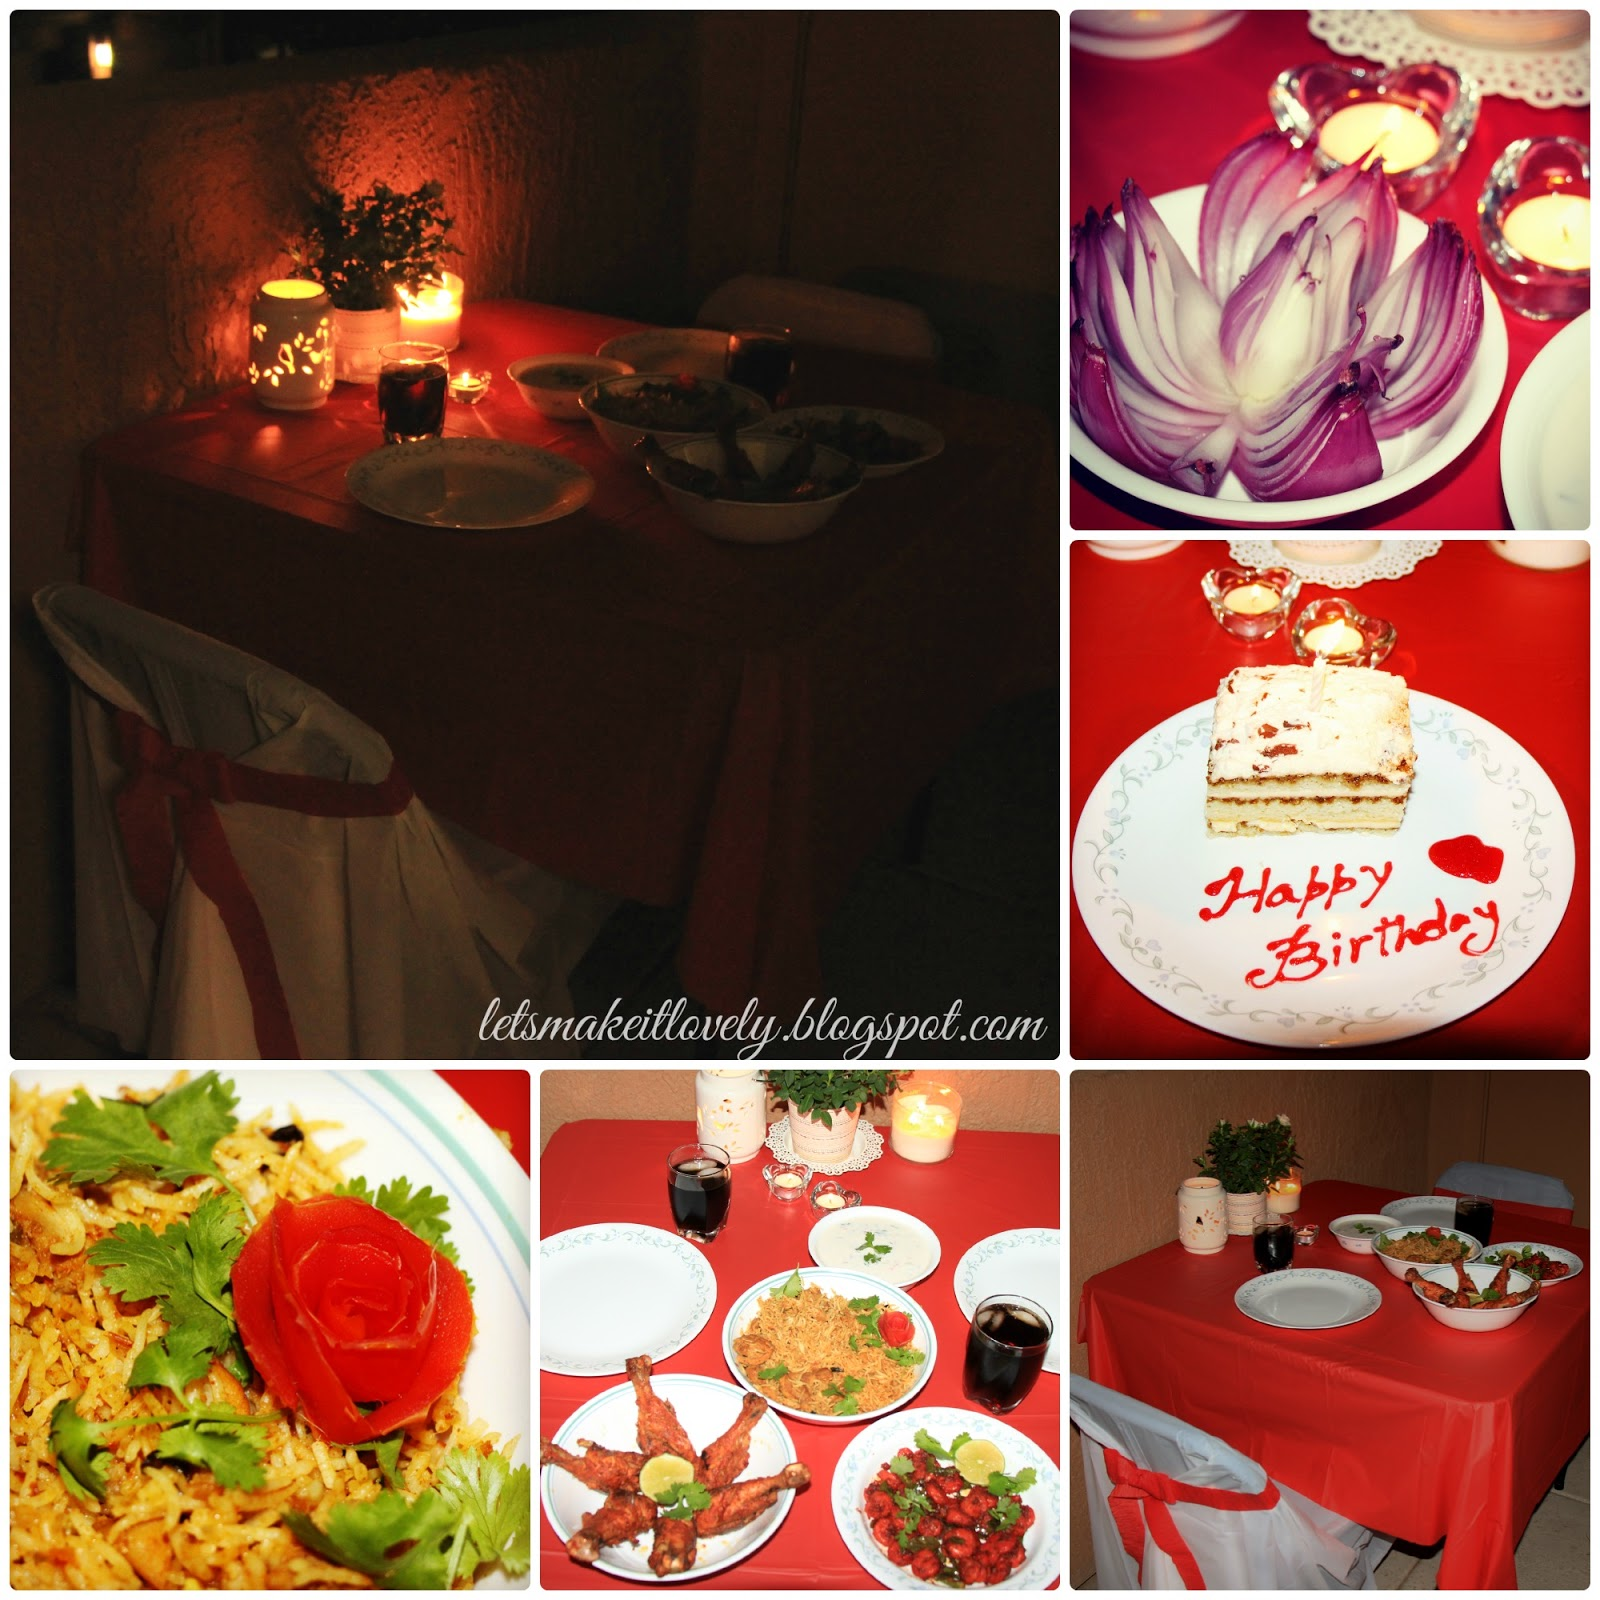 Let 39 s make it lovely 09 20 14 for Romantic meals